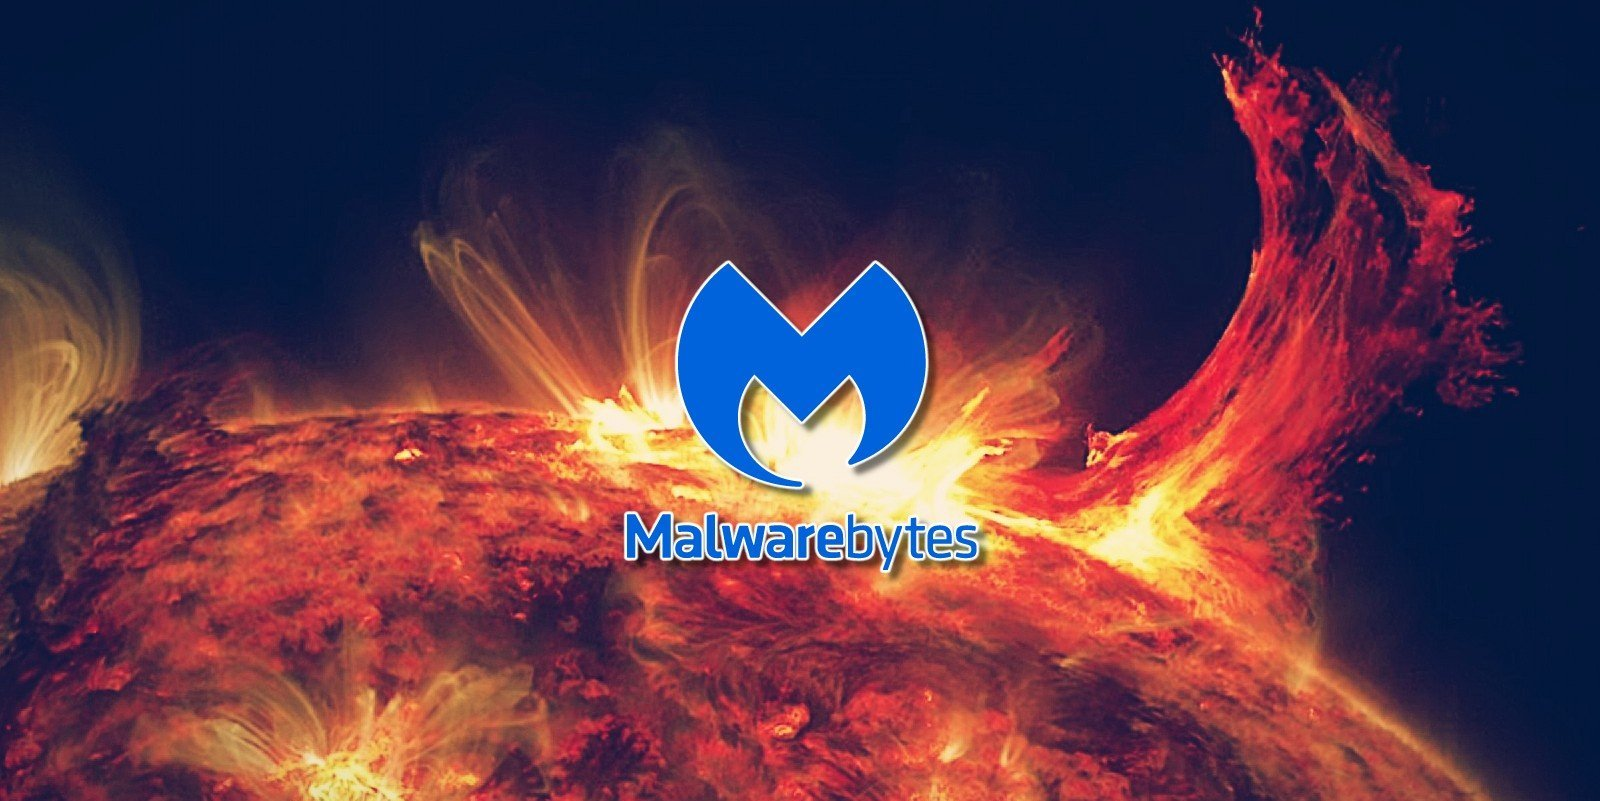 Malwarebytes Says SolarWinds Hackers Accessed Its Internal Emails